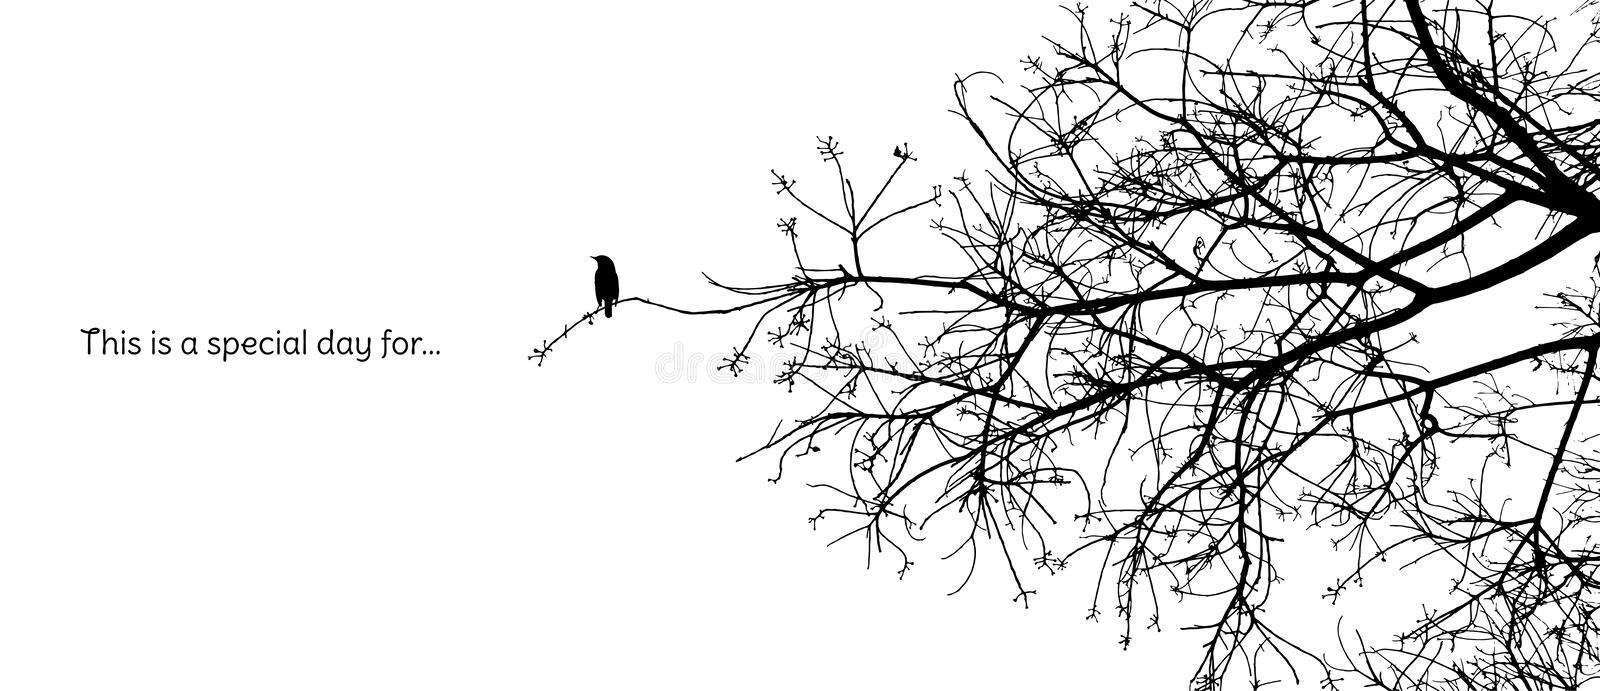 Lonely bird stands on a branch of a naked tree silhouette vector illustration